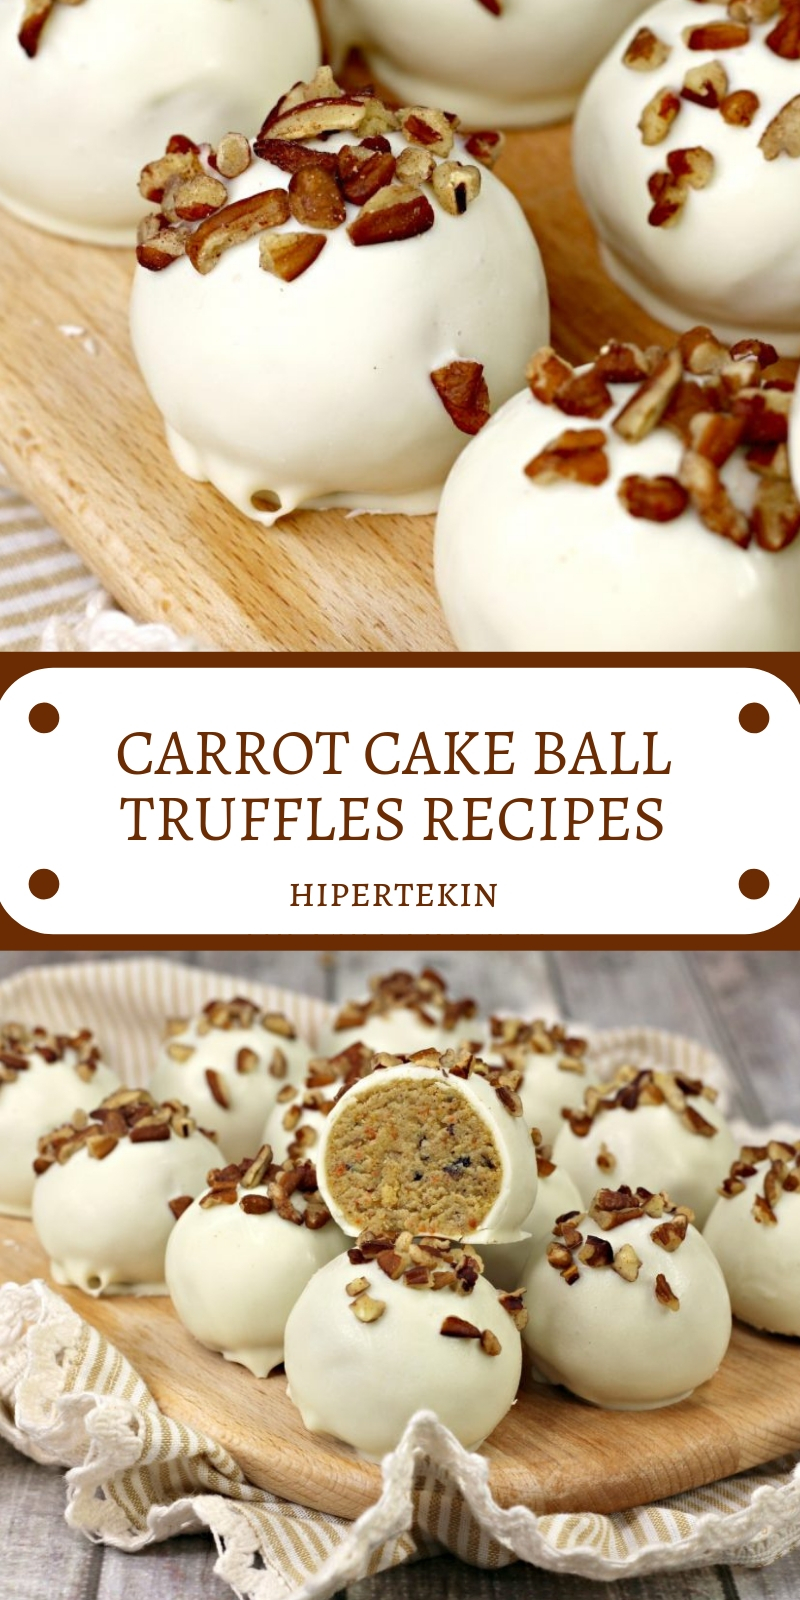 CARROT CAKE BALL TRUFFLES RECIPES